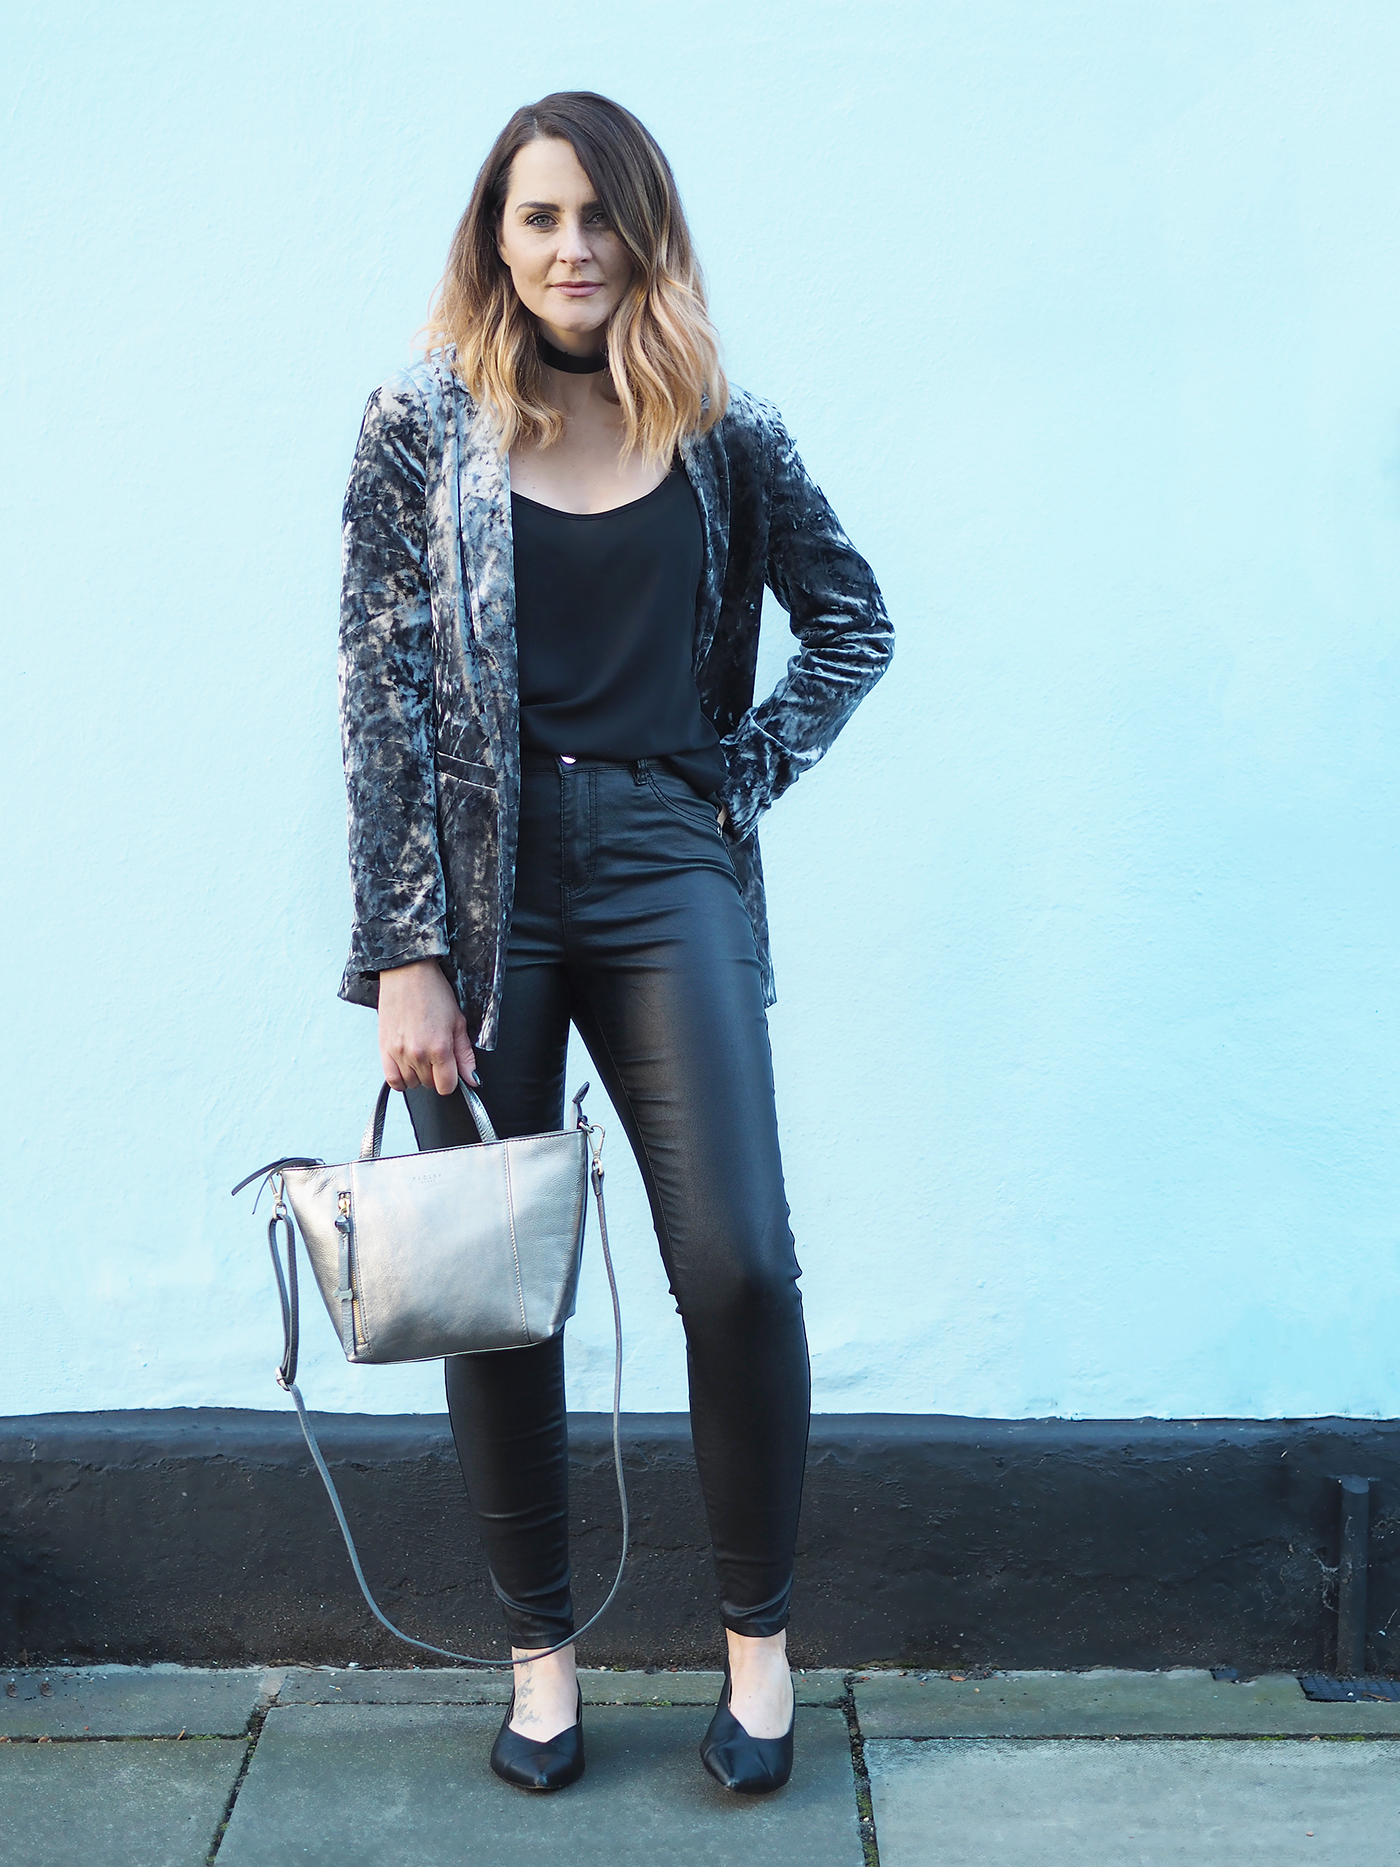 velvet blazer and leather trousers outfit